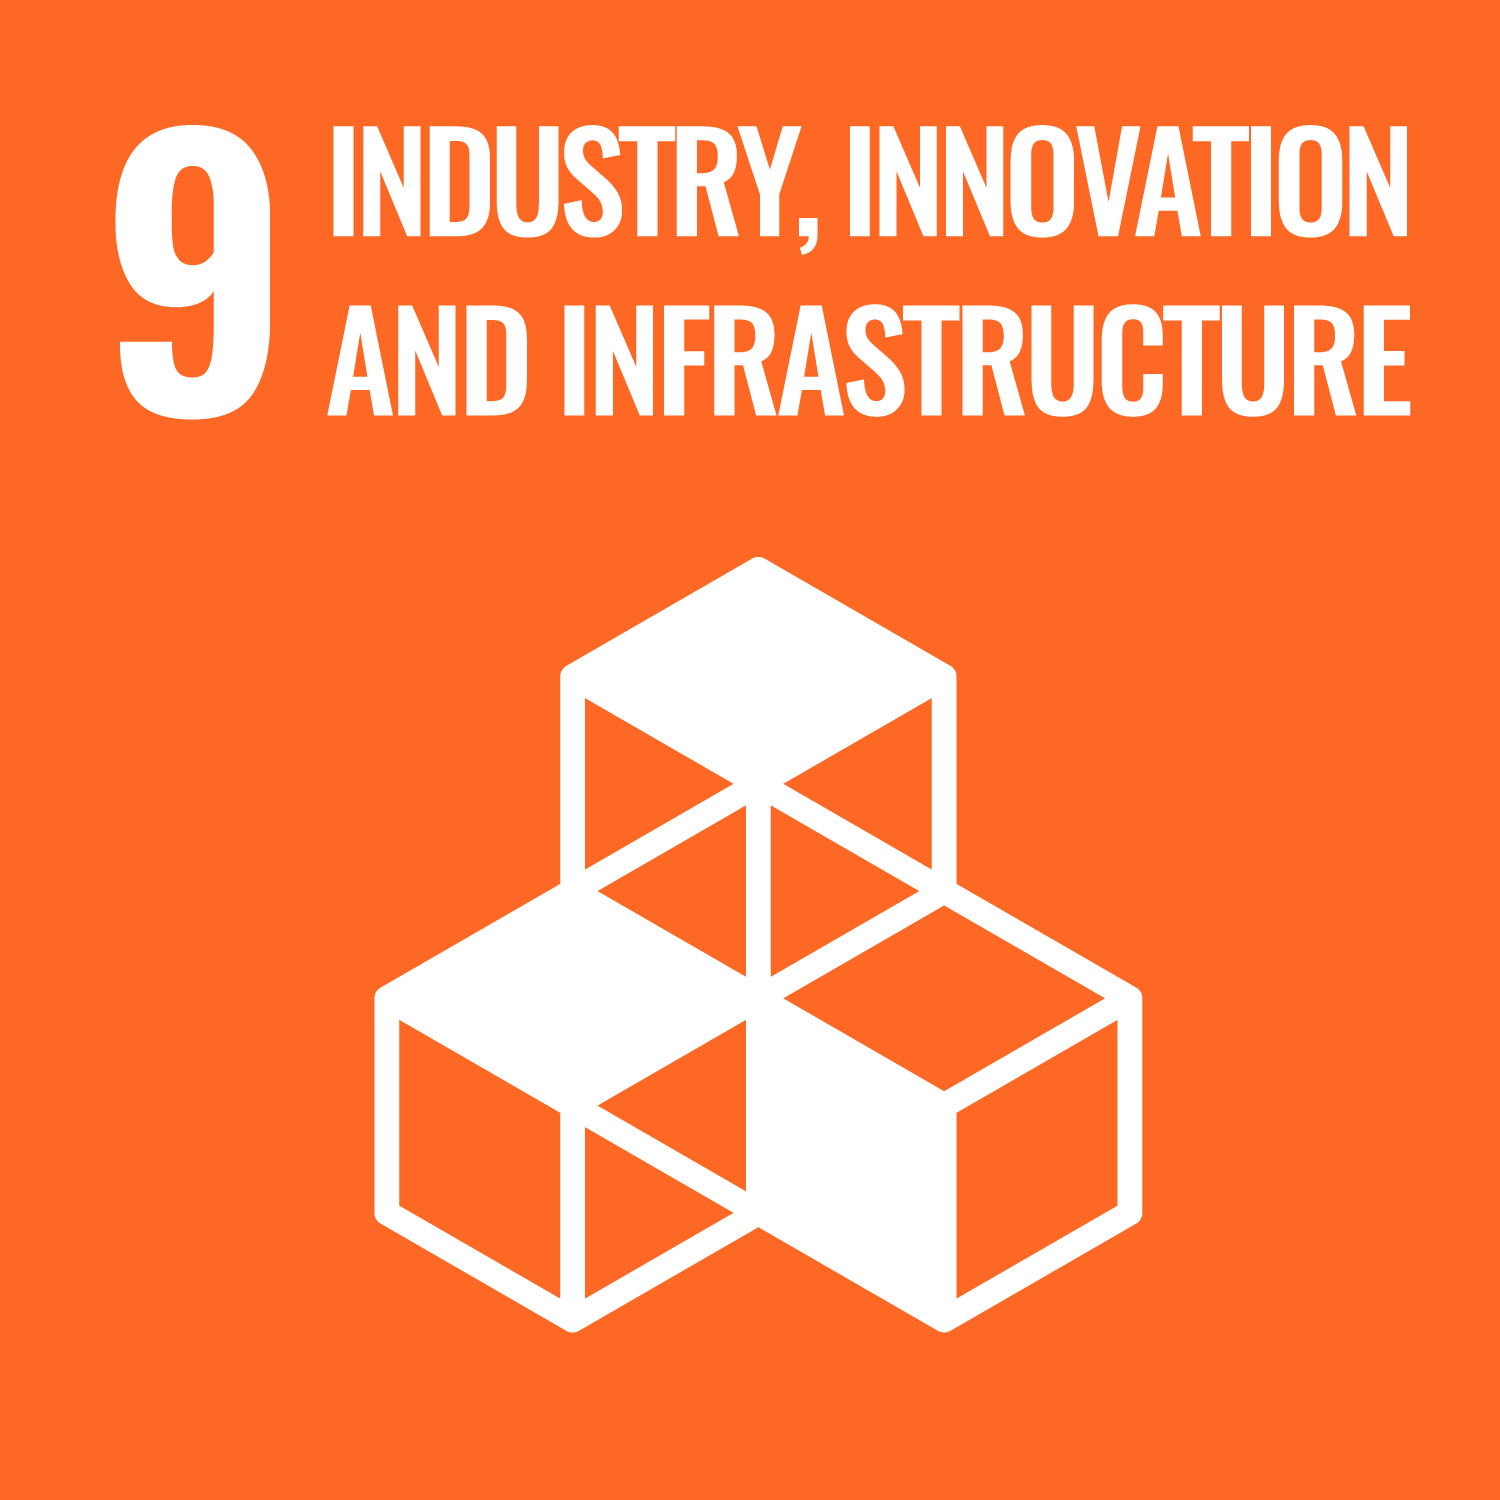 UNs Sustainable Development Goal 9 Industries, innovation and infrastructure. Link to UNs Sustainable development goal number 9